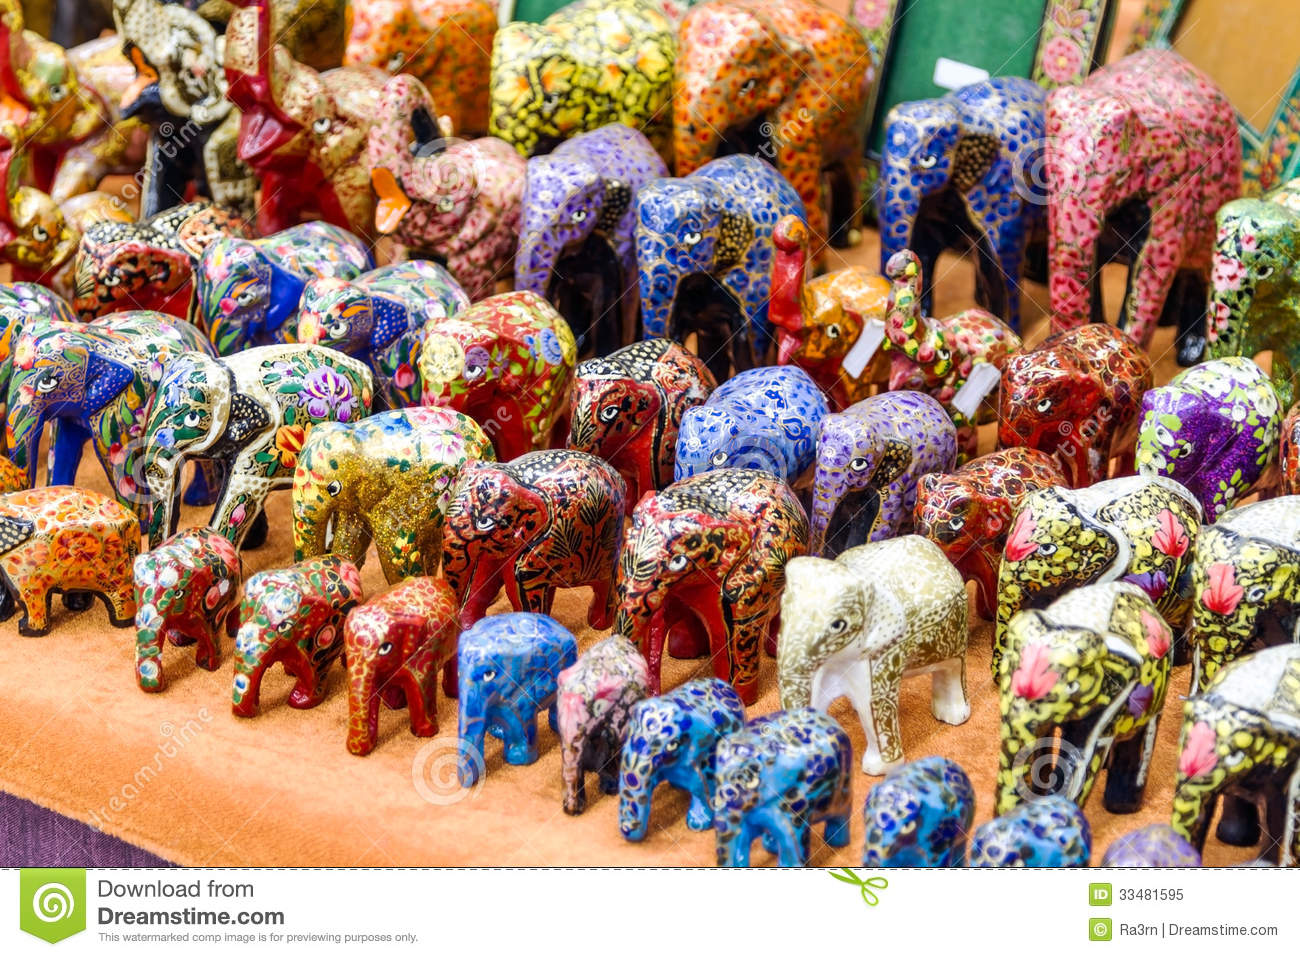 Royalty Free Stock Photo Elephants Indian Souvenirs Ceramic Colorful Image33481595 besides The Myth Of Gods Goodness also Krug Grande Cuvee Ch agne further Catw1 45gr besides 912694 Market Stall Sketch. on stock market gifts